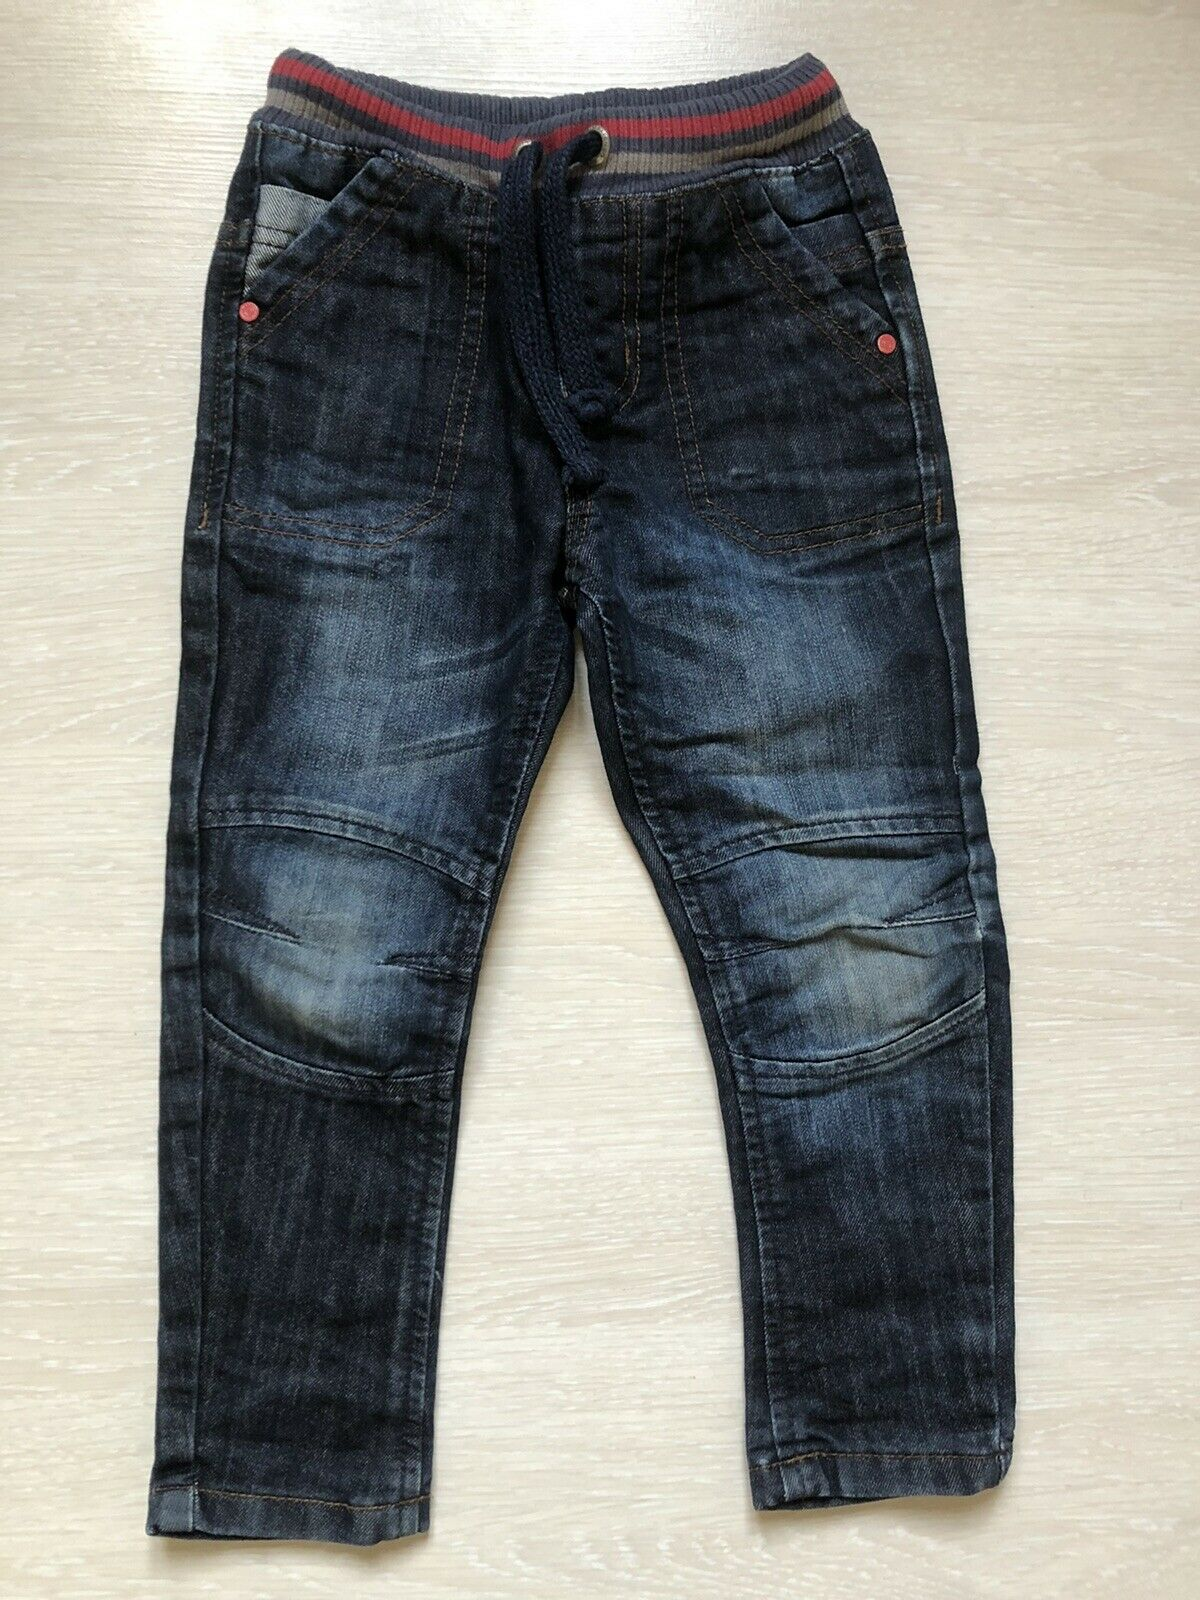 Jeans brut in extenso Taille 4 Ans